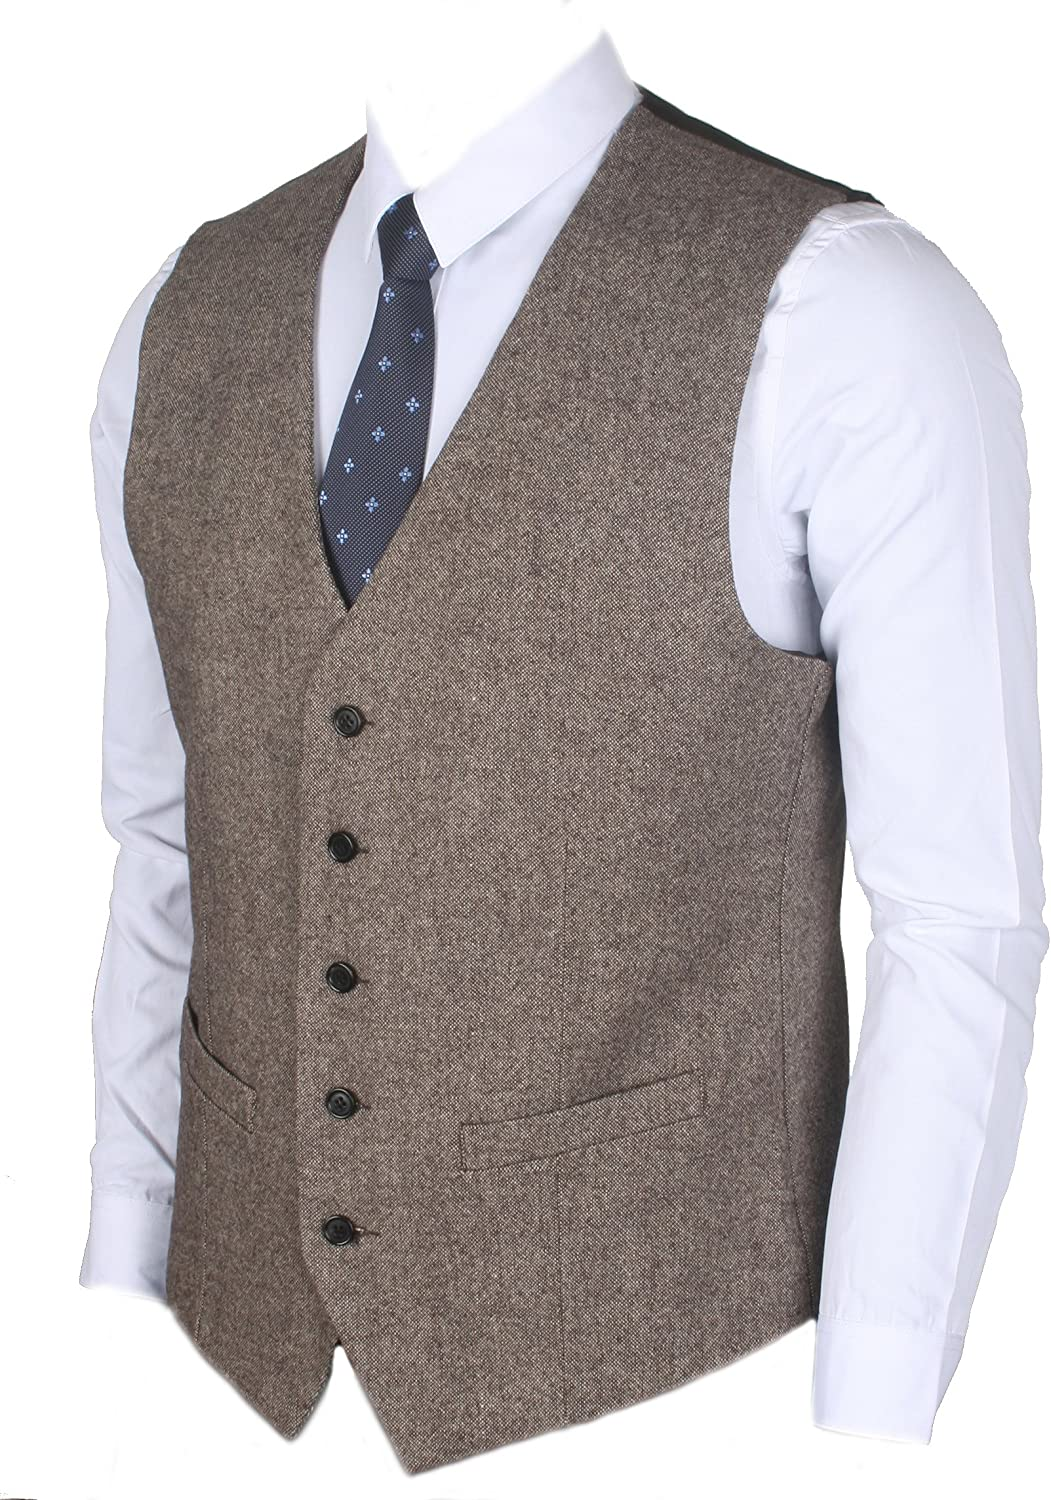 Men's Vintage Vests, Sweater Vests Ruth&Boaz 2Pockets 5Buttons Wool Herringbone/Tweed Tailored Collar Suit Waistcoat £29.90 AT vintagedancer.com